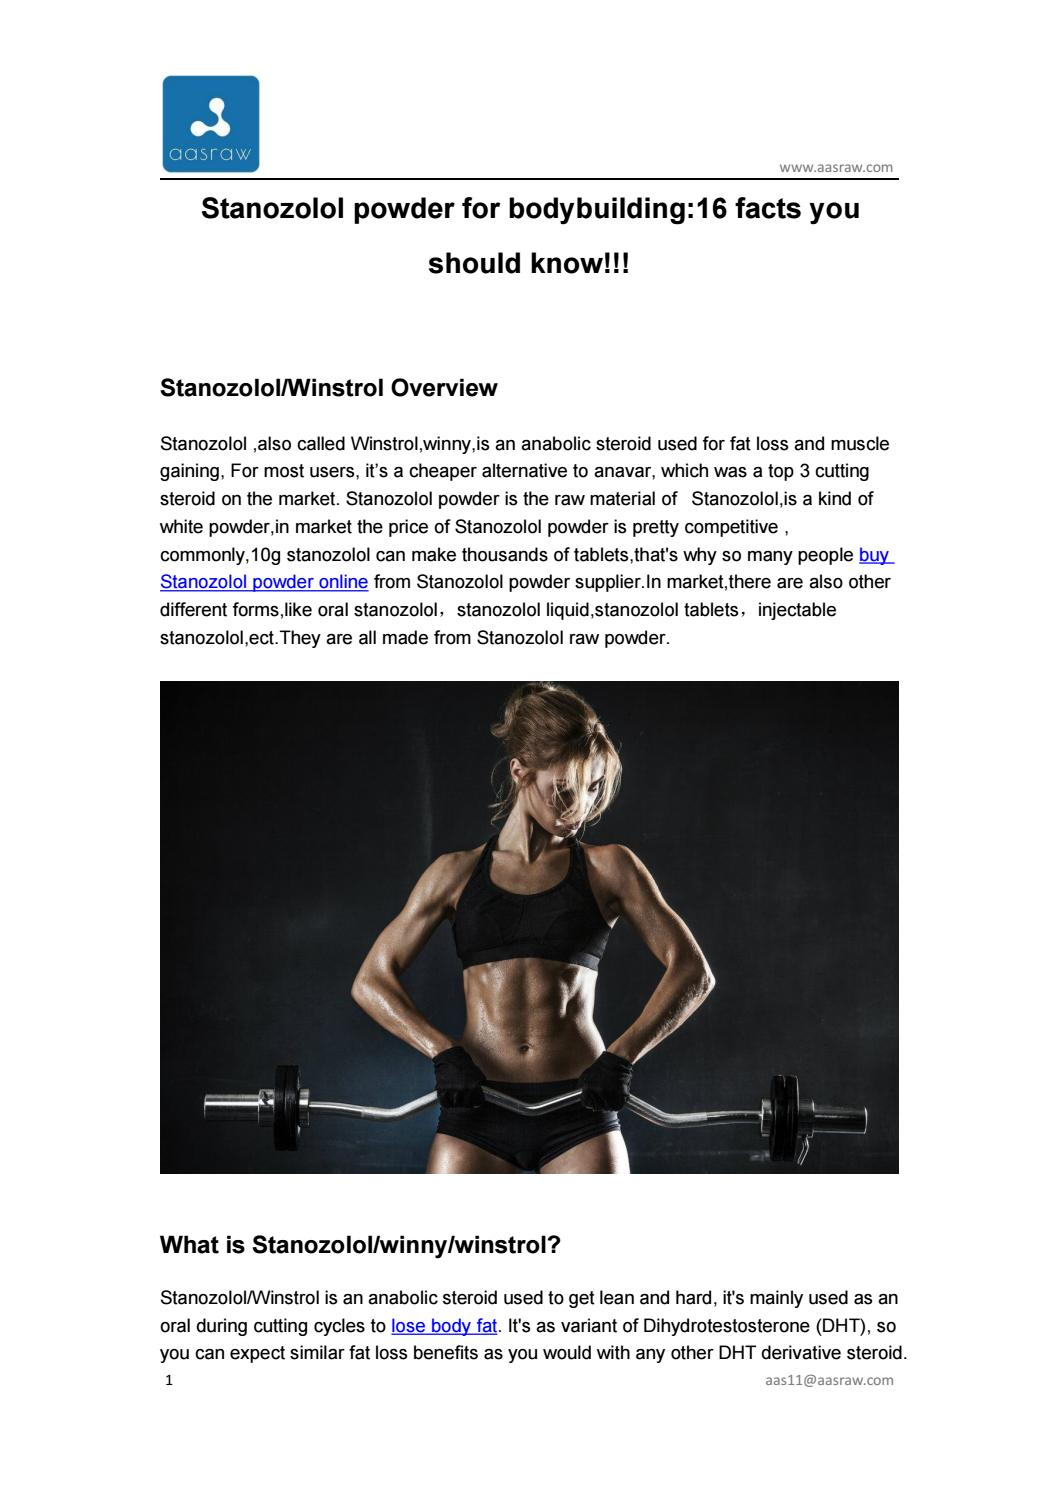 Stanozolol powder for bodybuilding:16 facts you should know